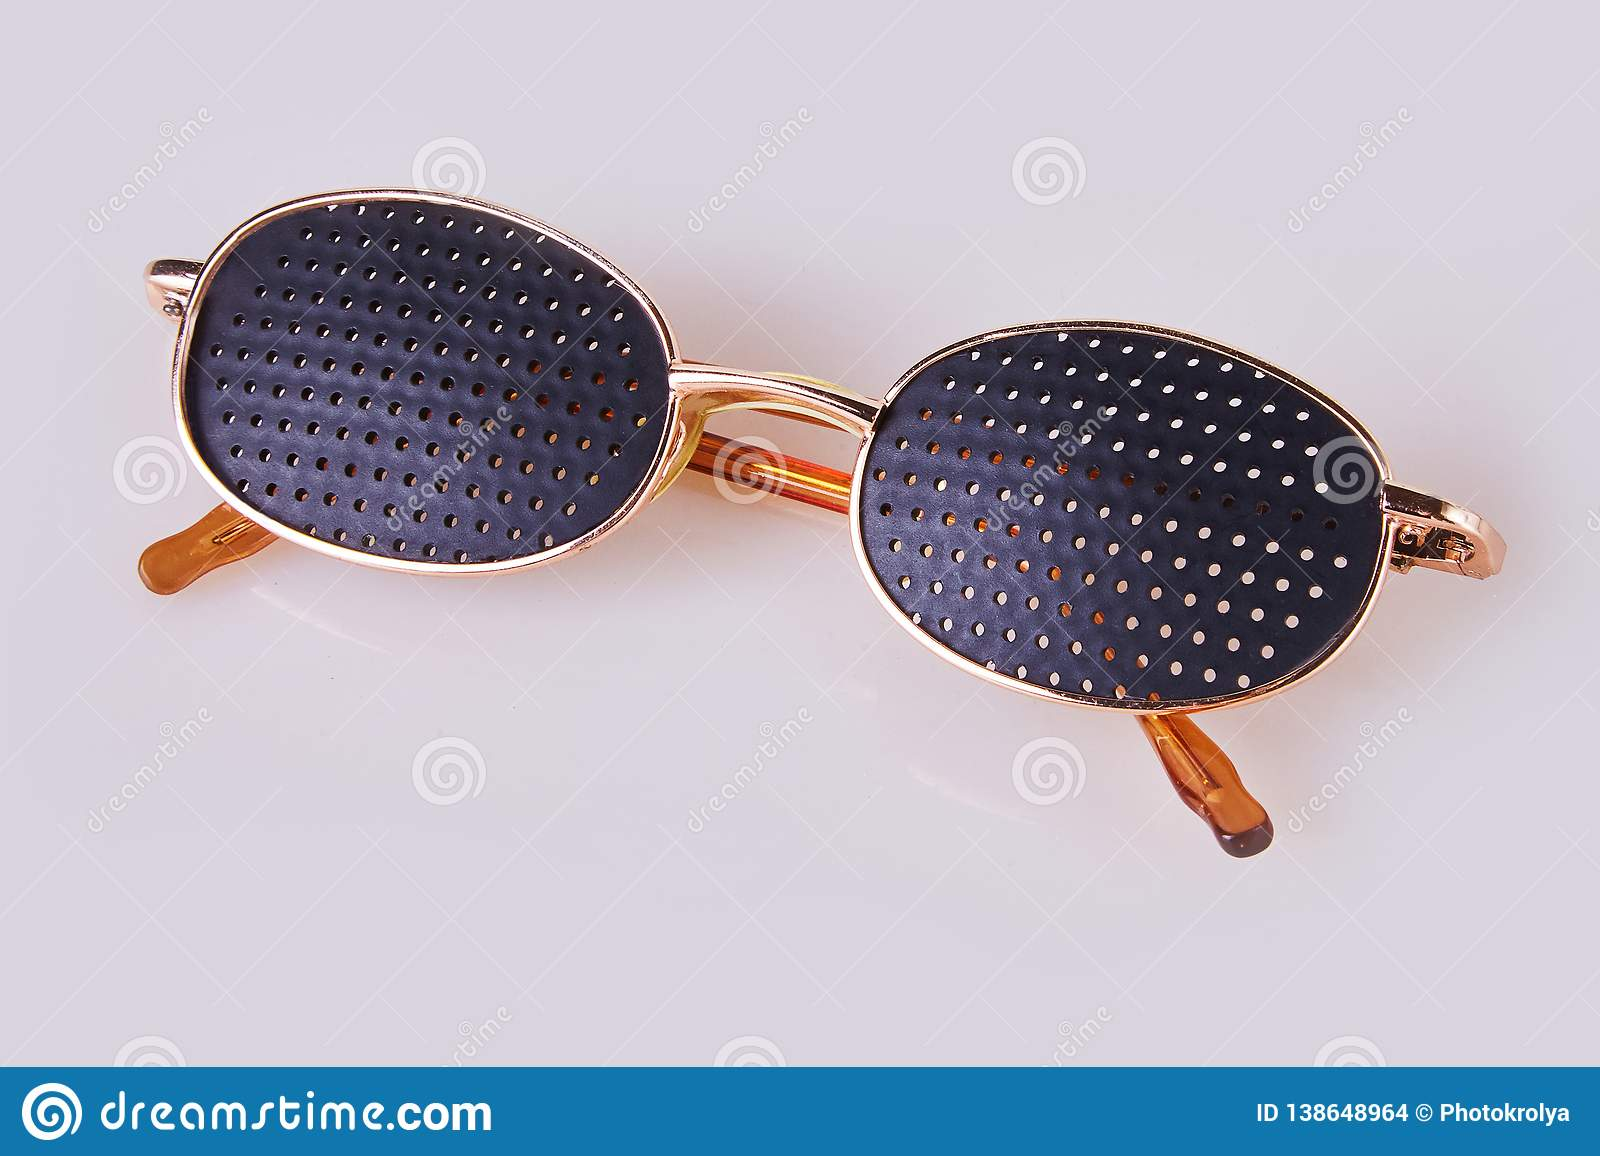 Black medical glasses with holes isolated on white background.